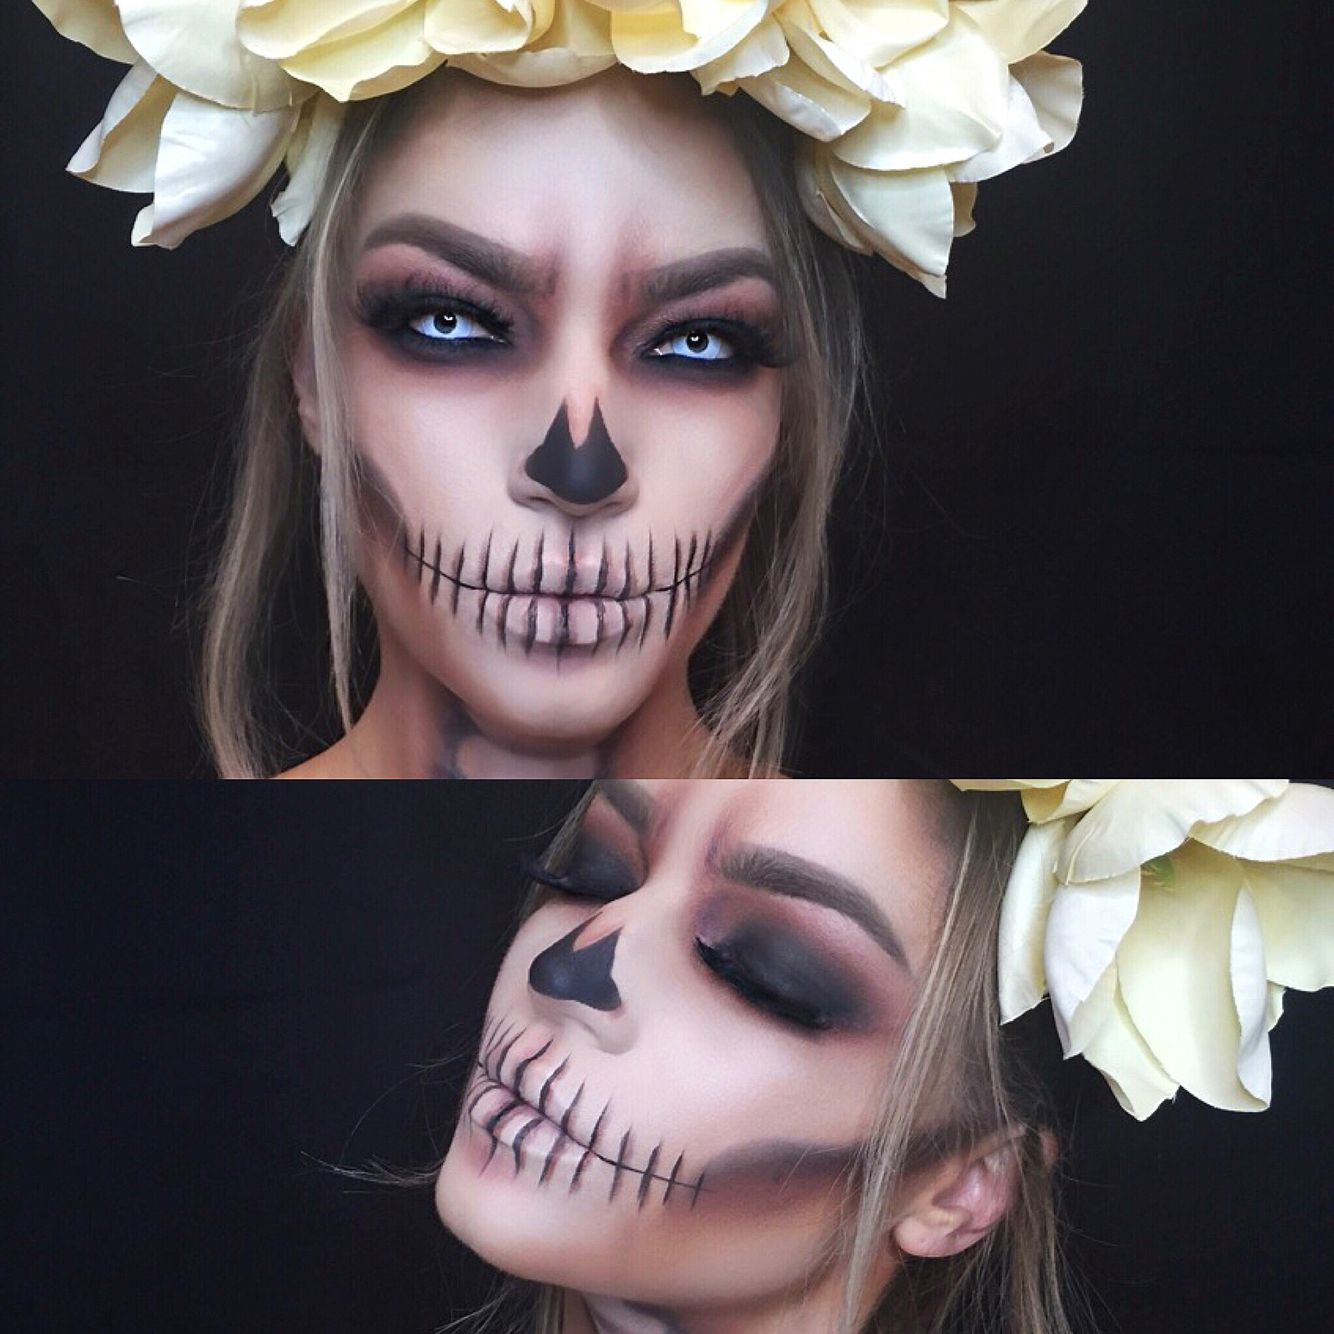 Smoked Out Skull Makeup | My Makeup | Pinterest | Skull Makeup Smoking And Makeup